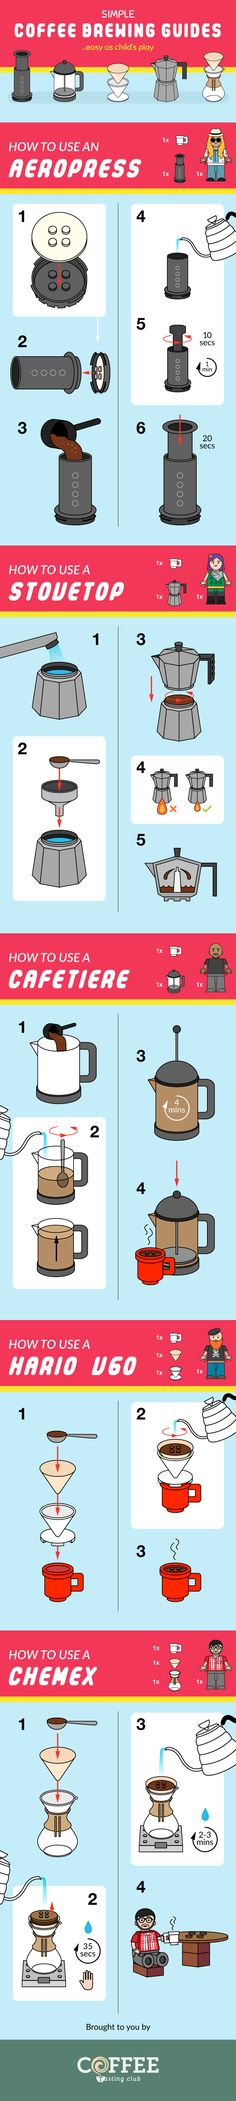 Brewing coffee might sound like an expensive chore, but it's actually much simpler than you might think. This infographic by Coffee. Coffee Brewing Methods, Home Brewing Beer, Brewing Recipes, Beer Recipes, Homebrew Recipes, Wine Mixed Drinks, Coffee Chart, Brew Your Own, Coffee Benefits